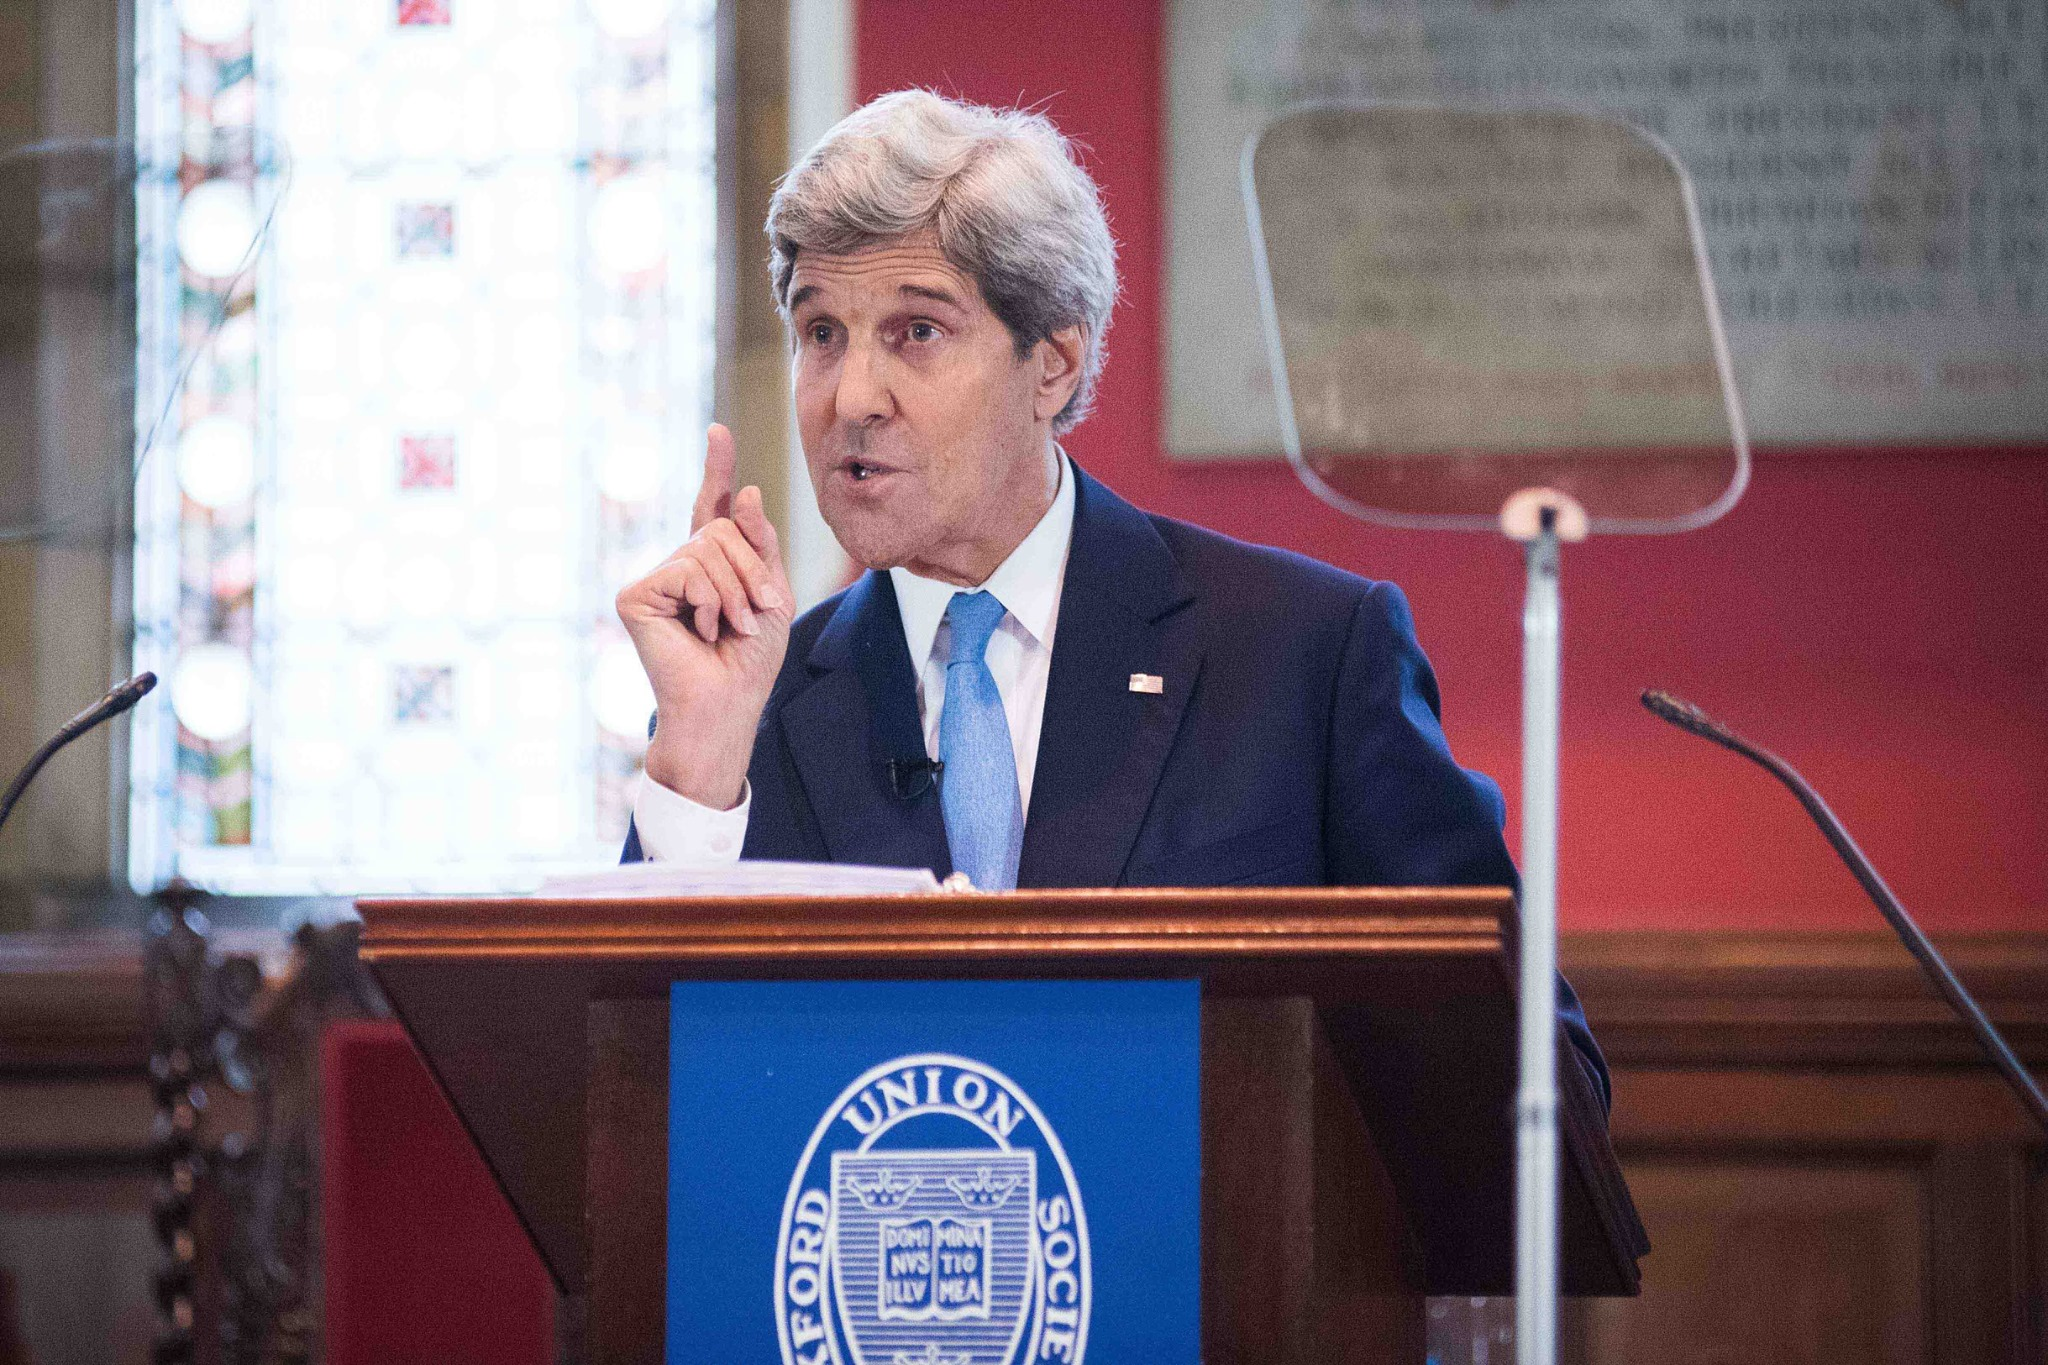 John Kerry comes to the Oxford Union